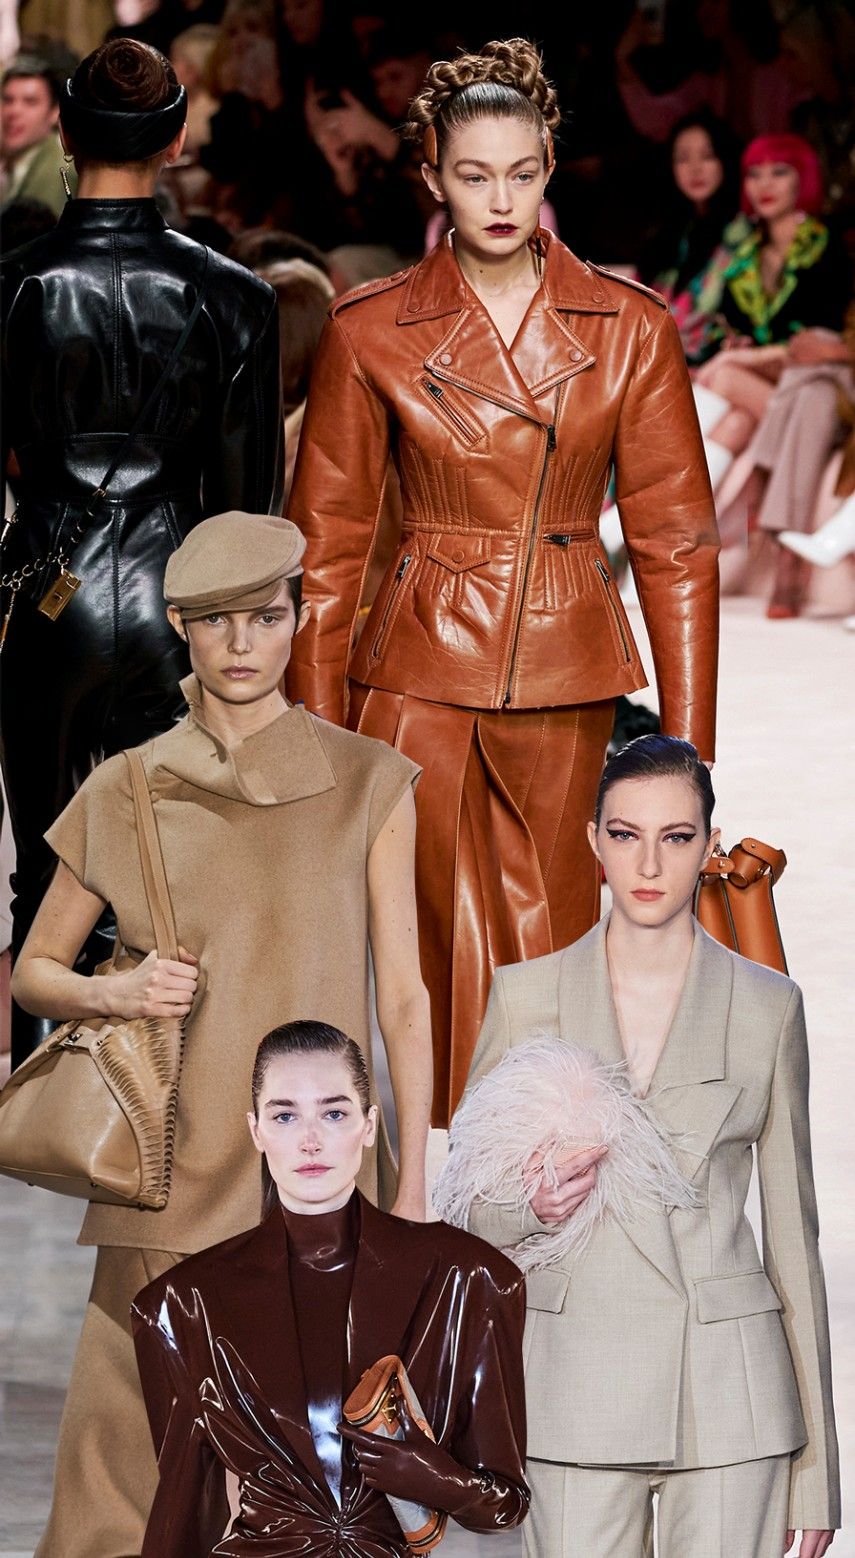 The Hottest And Most Coveted Fashion Trends From The Fall 2020 Runways (12) fashion trend The Hottest And Most Coveted Fashion Trends From The Fall 2020 Runways The Hottest And Most Coveted Fashion Trends From The Fall 2020 Runways 12